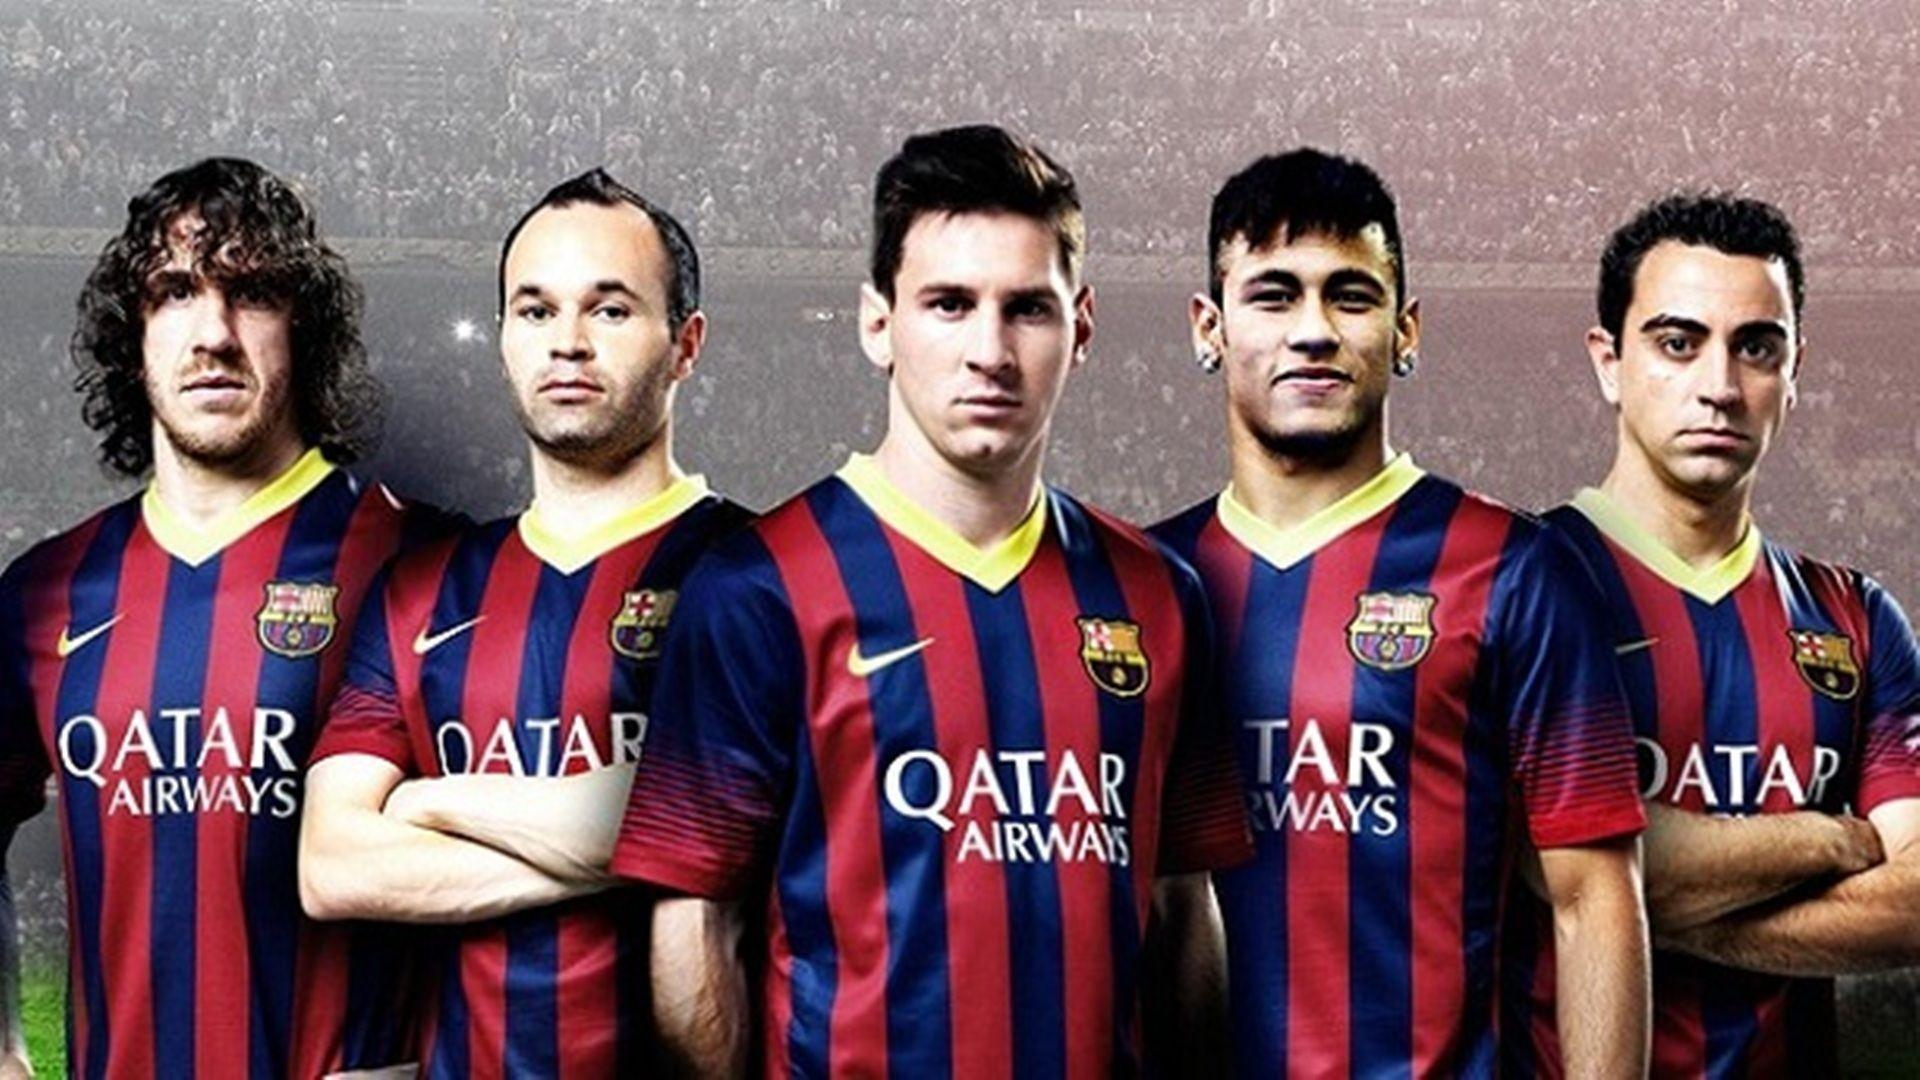 Fc barcelona wallpapers wallpaper cave images for fc barcelona team wallpaper 2014 voltagebd Images